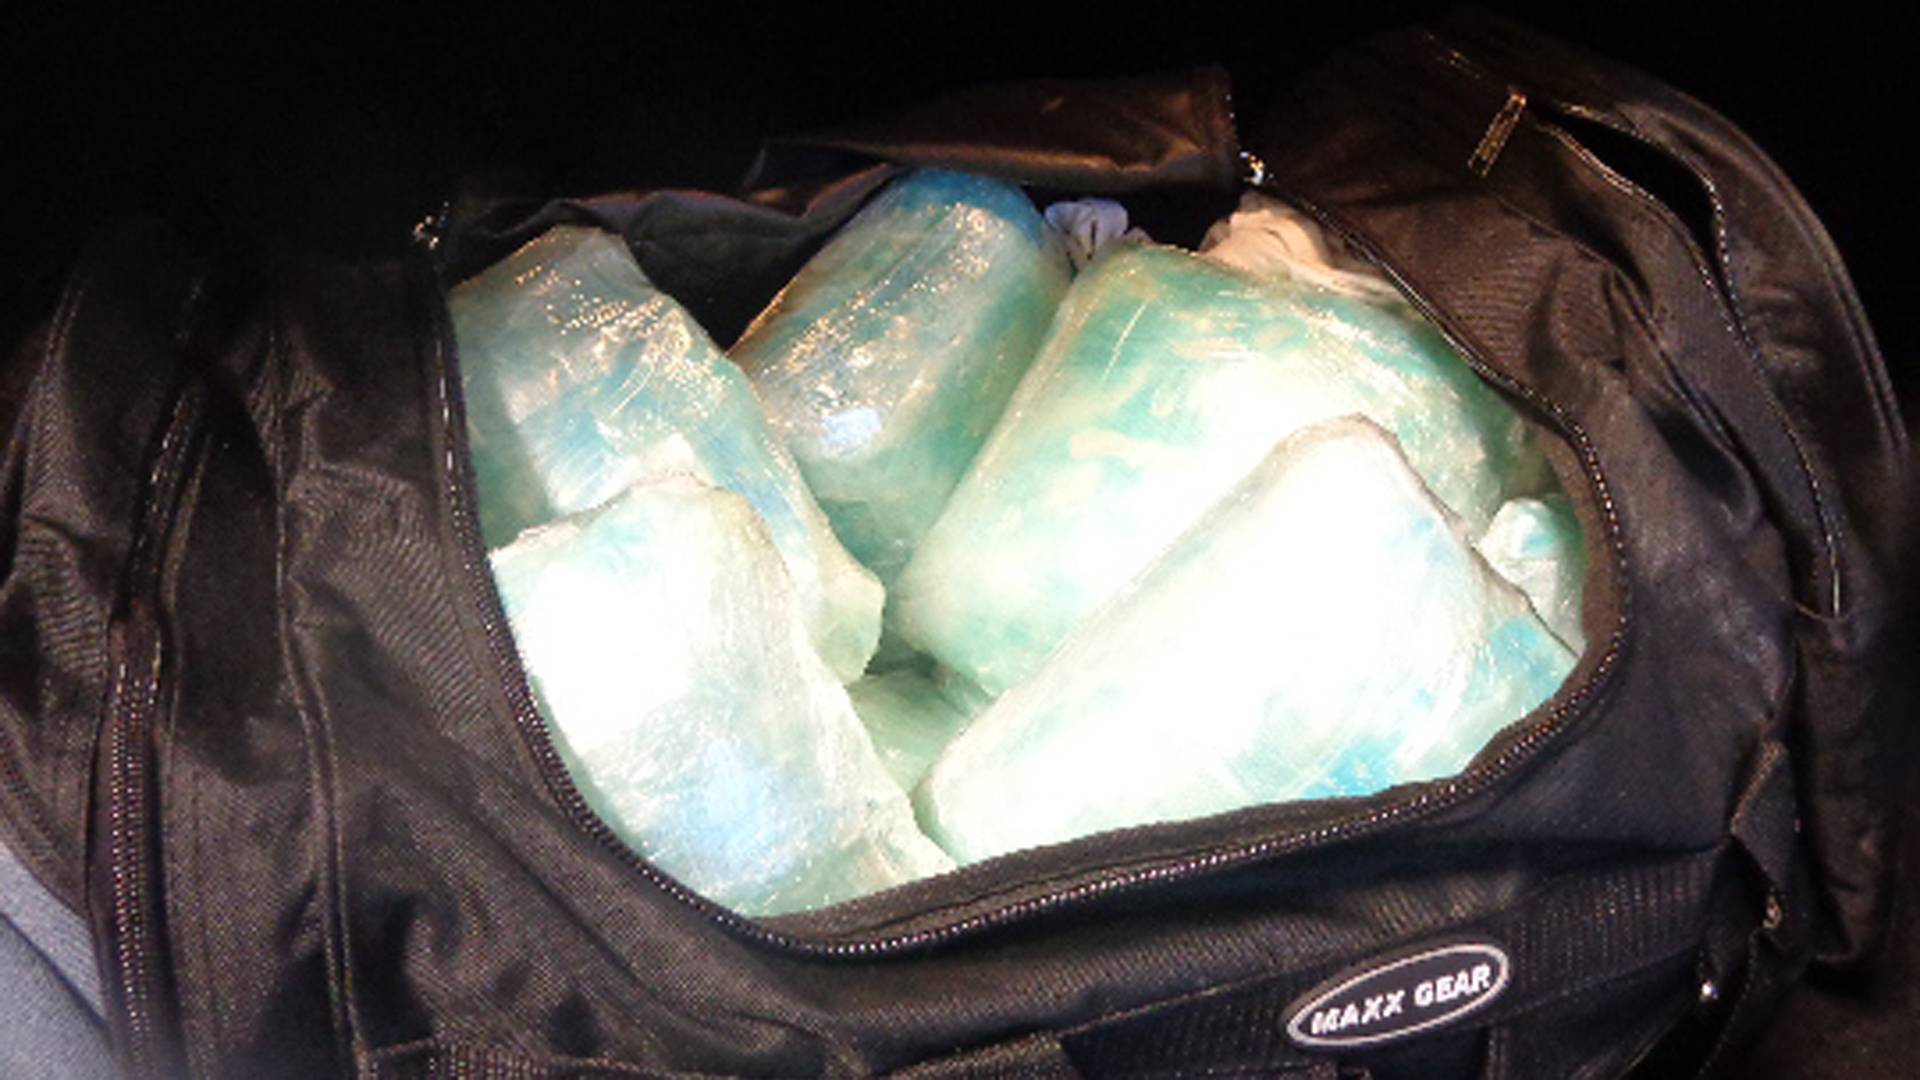 Meth seized by U.S. Border Patrol agents in San Diego is shown in a photo released by the agency on Dec. 3, 2019.